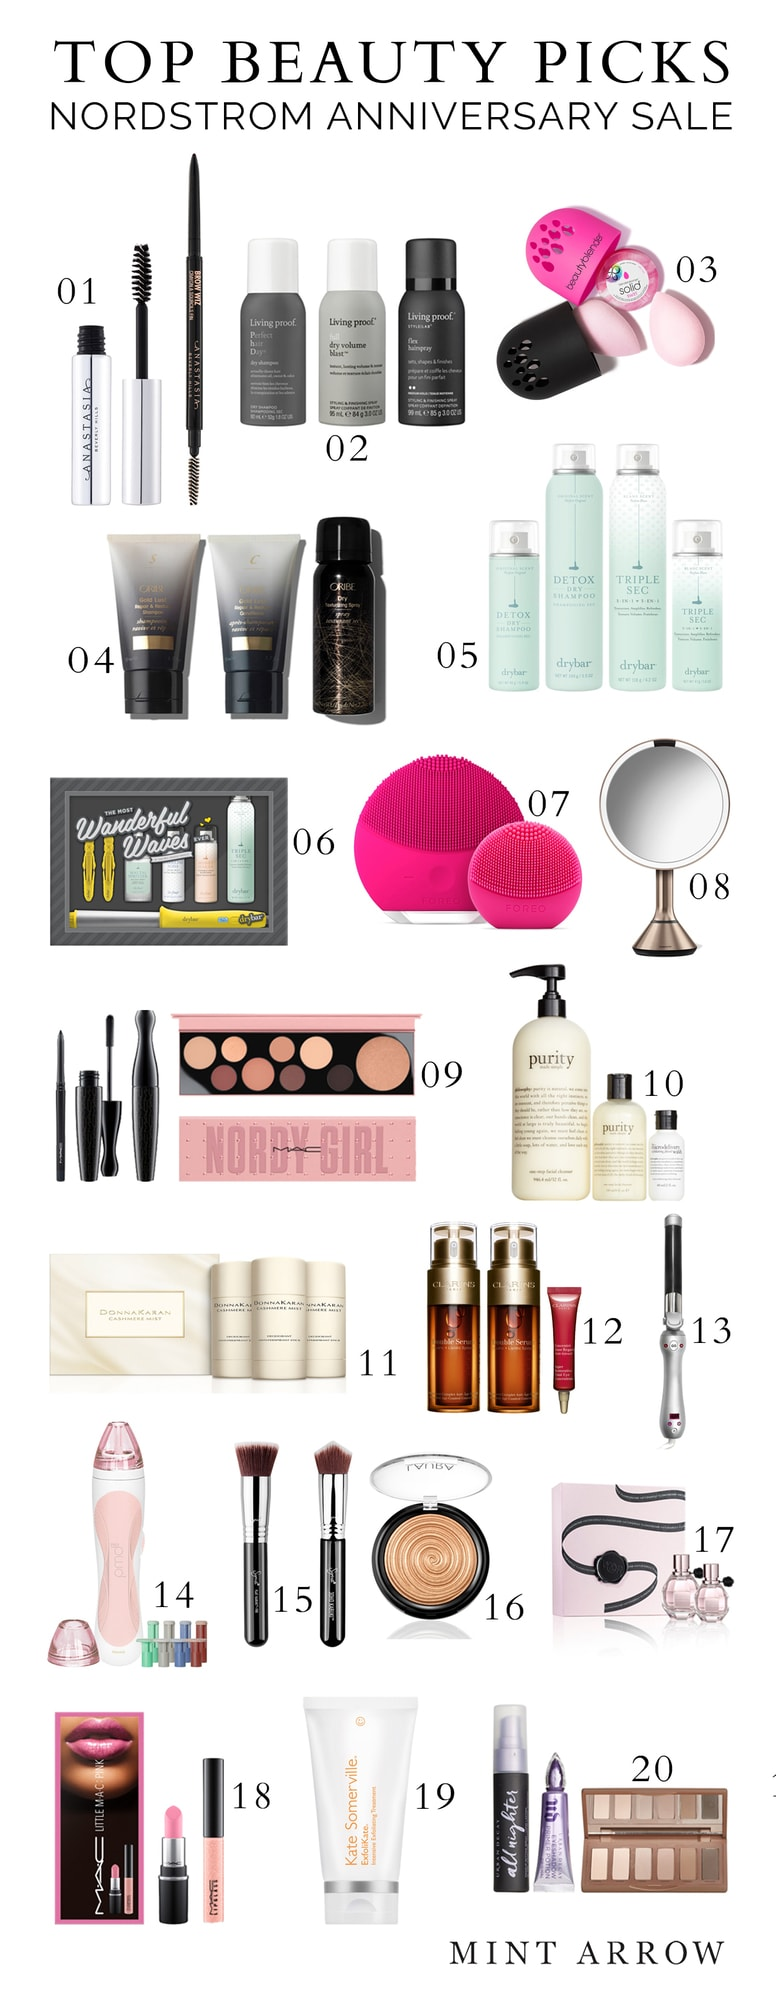 Nordstrom Anniversary Sale beauty top picks